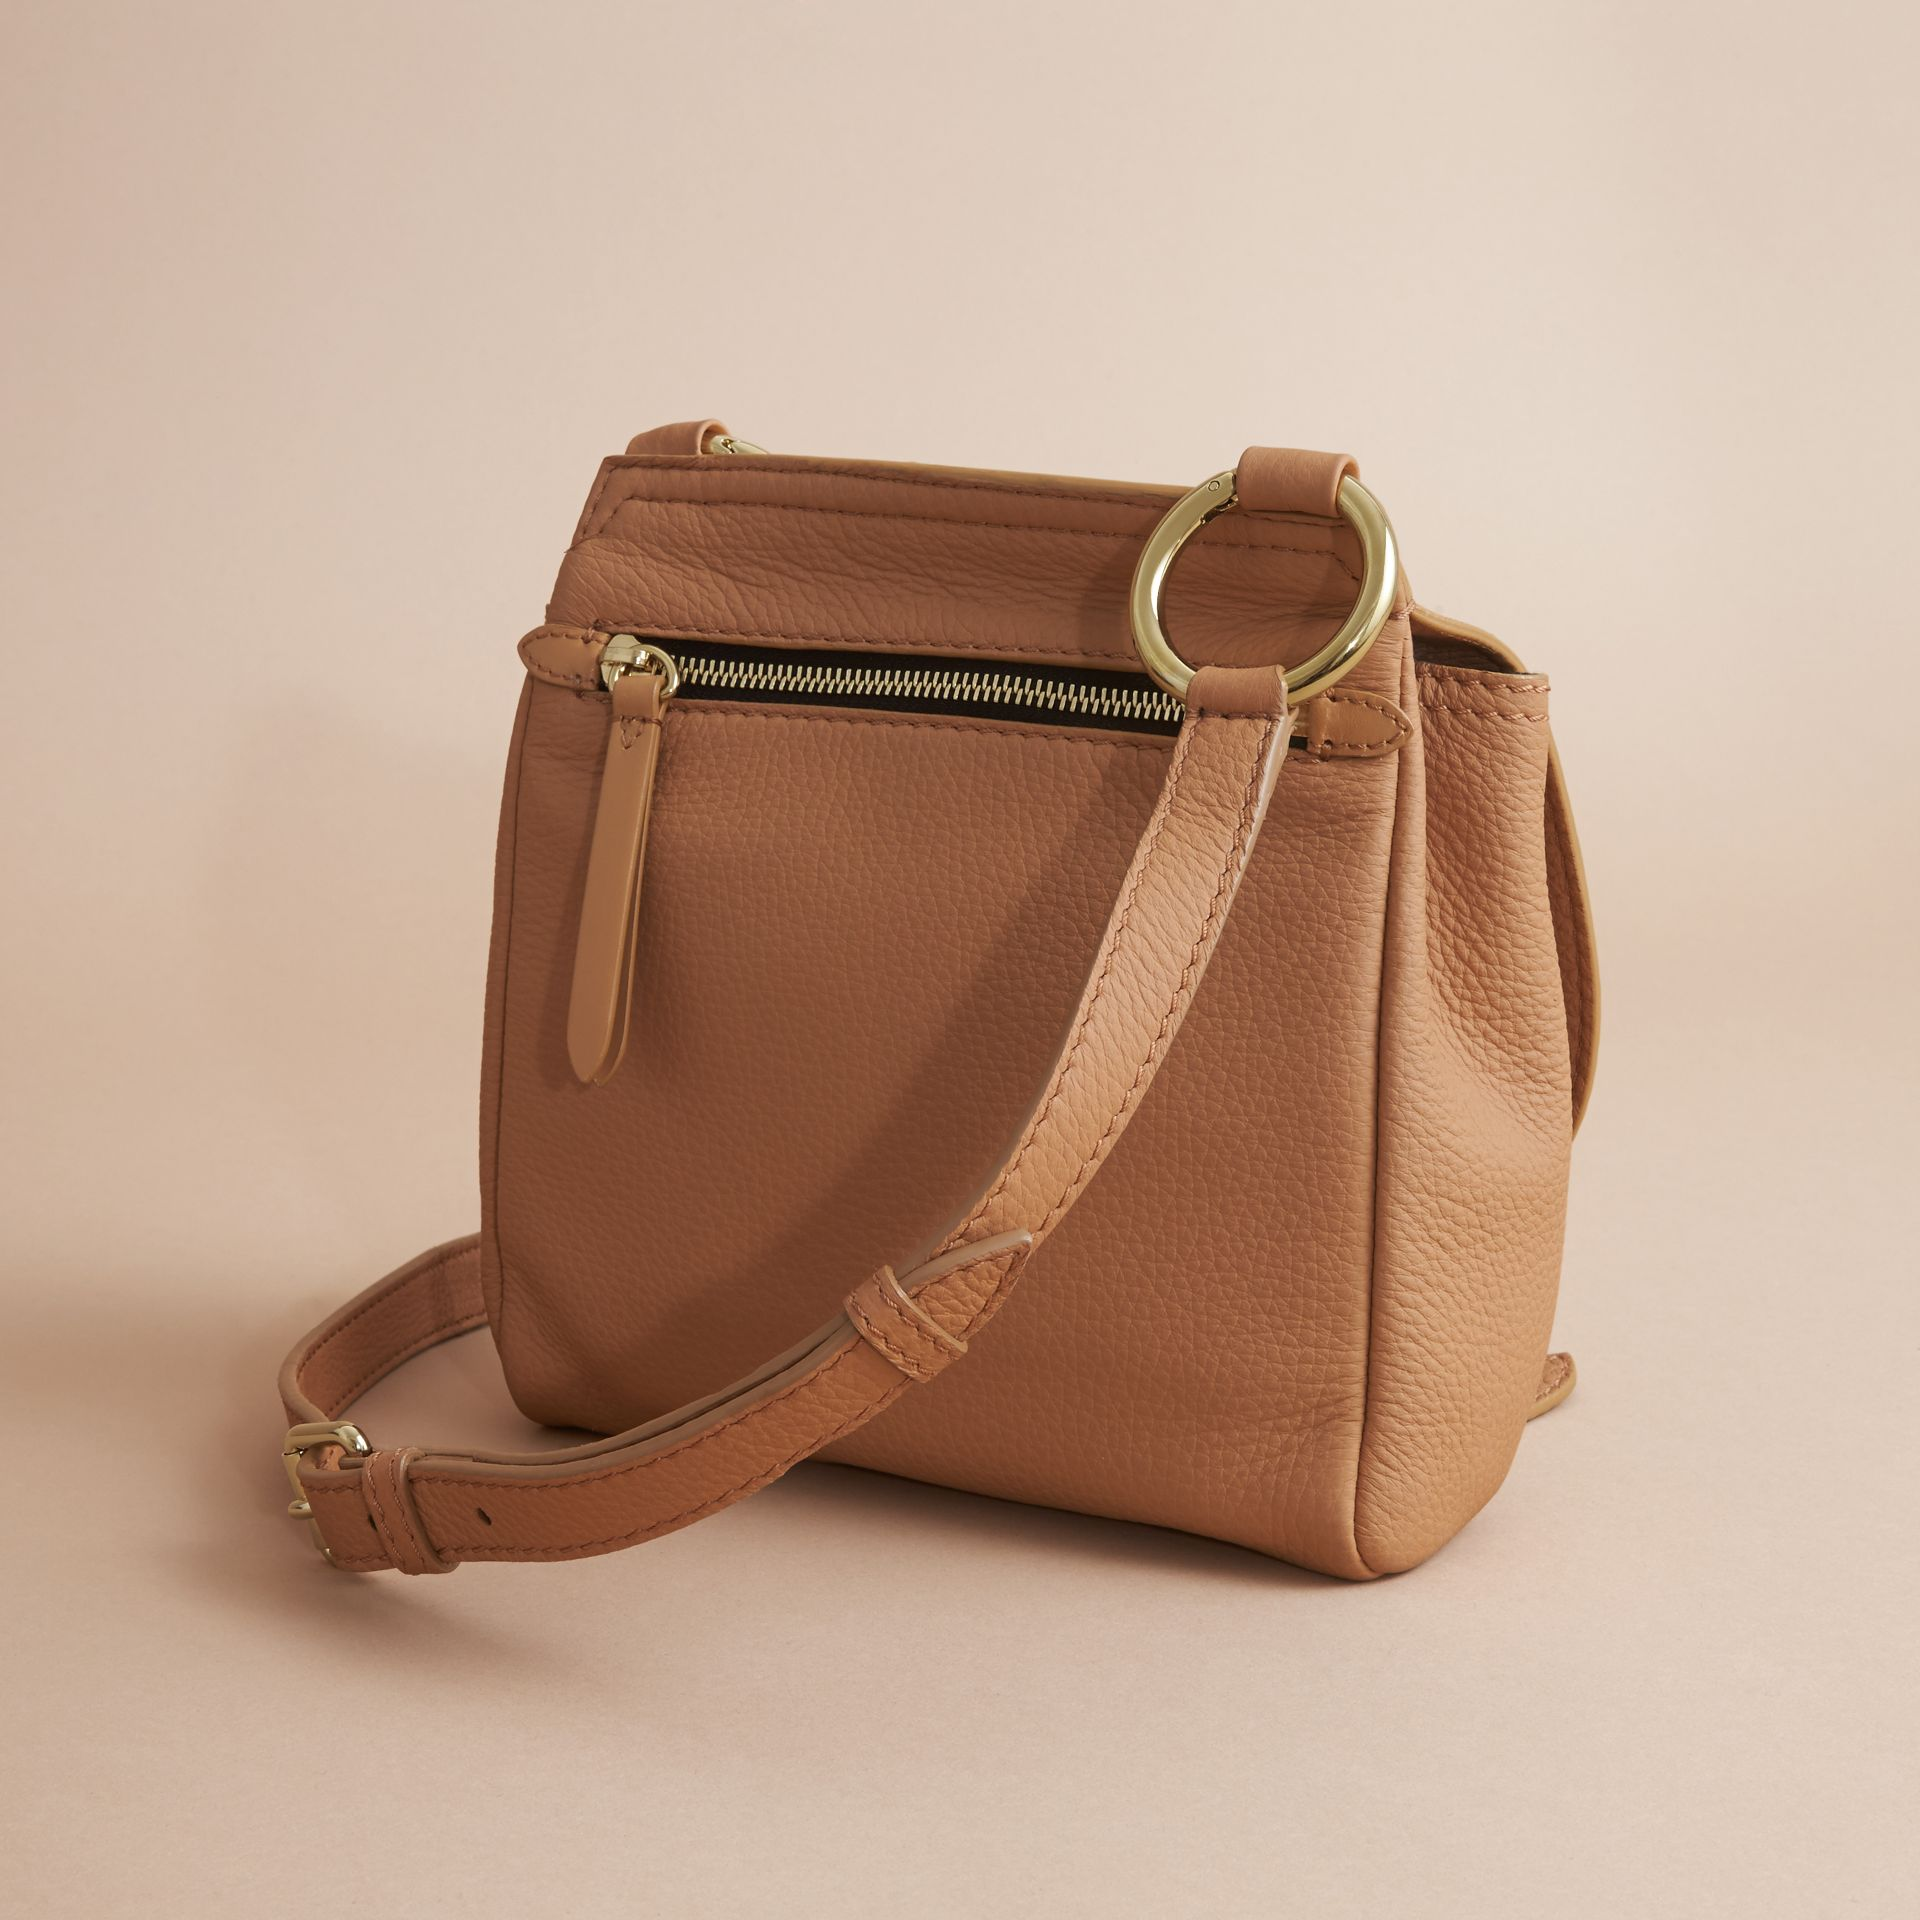 The Bridle Crossbody Bag in Deerskin in Pale Clementine - Women | Burberry - gallery image 4